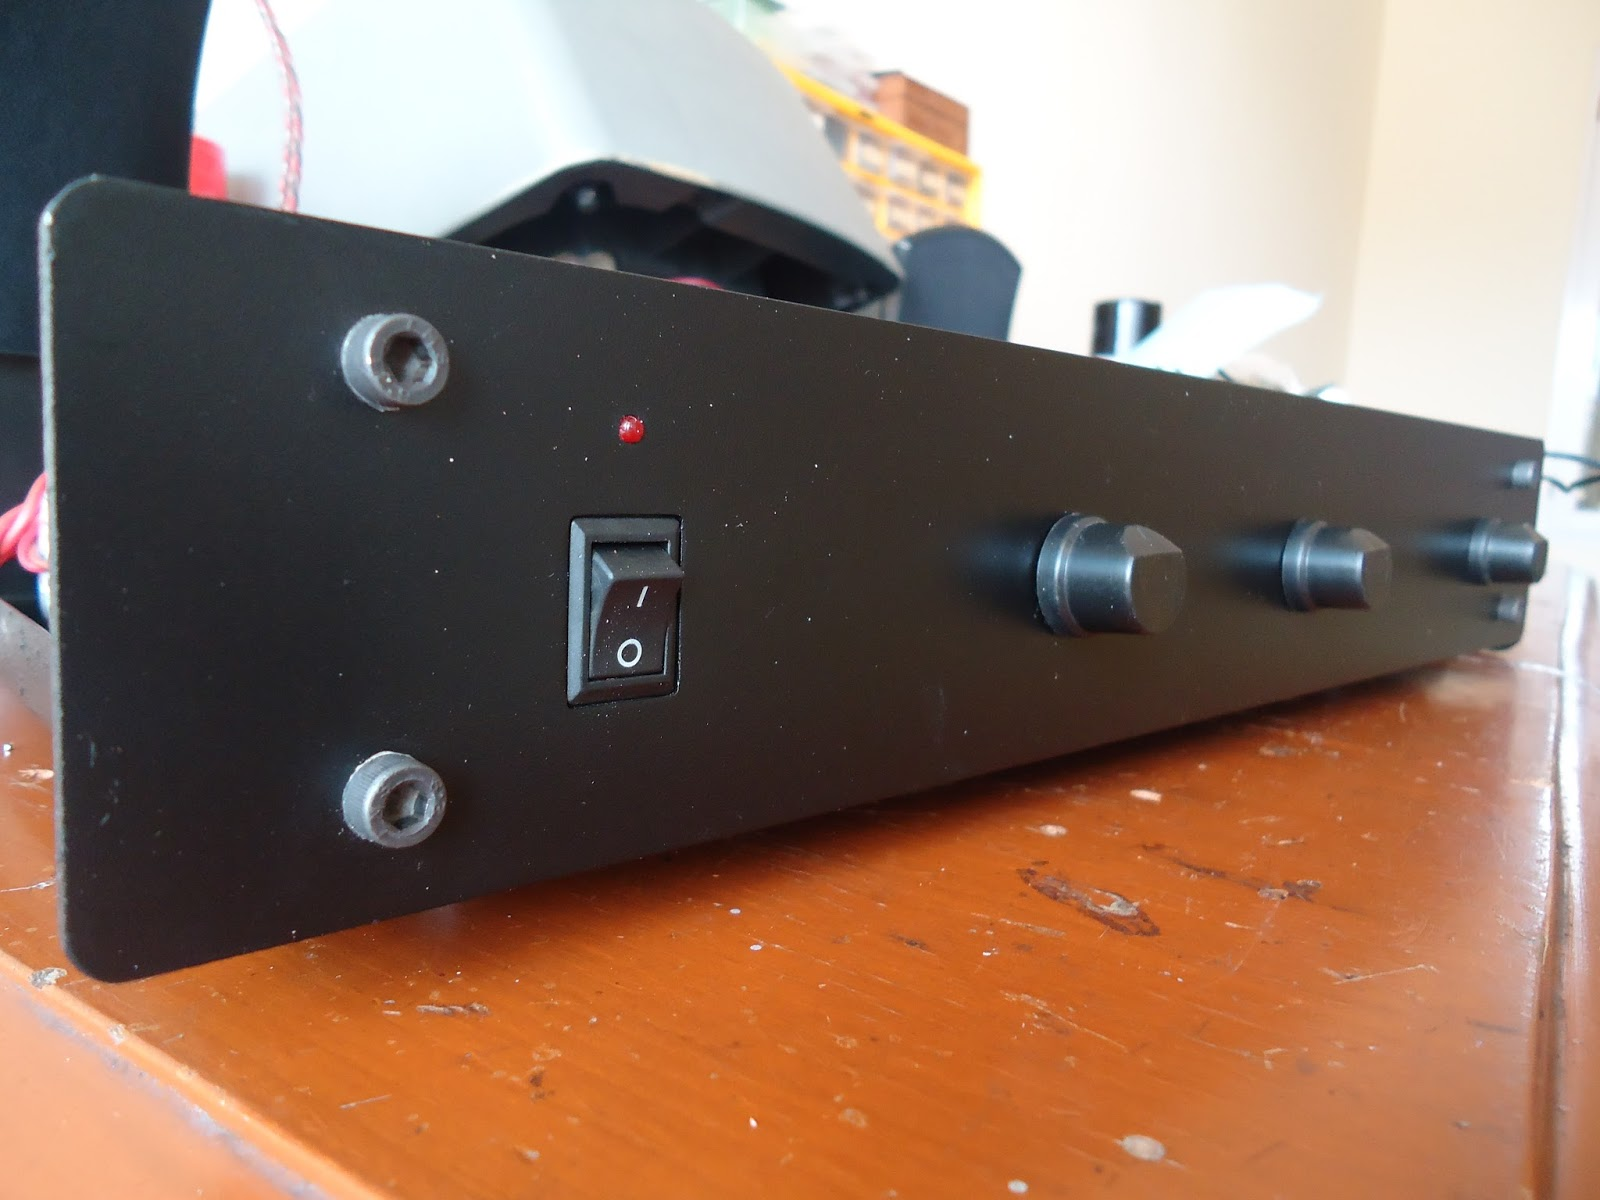 The Orronoco Audio Diy Simple Home Theater System Part 2 Final How To Install Looking Setup Of This Surround Is A Mess I It Only For Temporary Basis That Why All Cables And Amplifier Lying On Floor